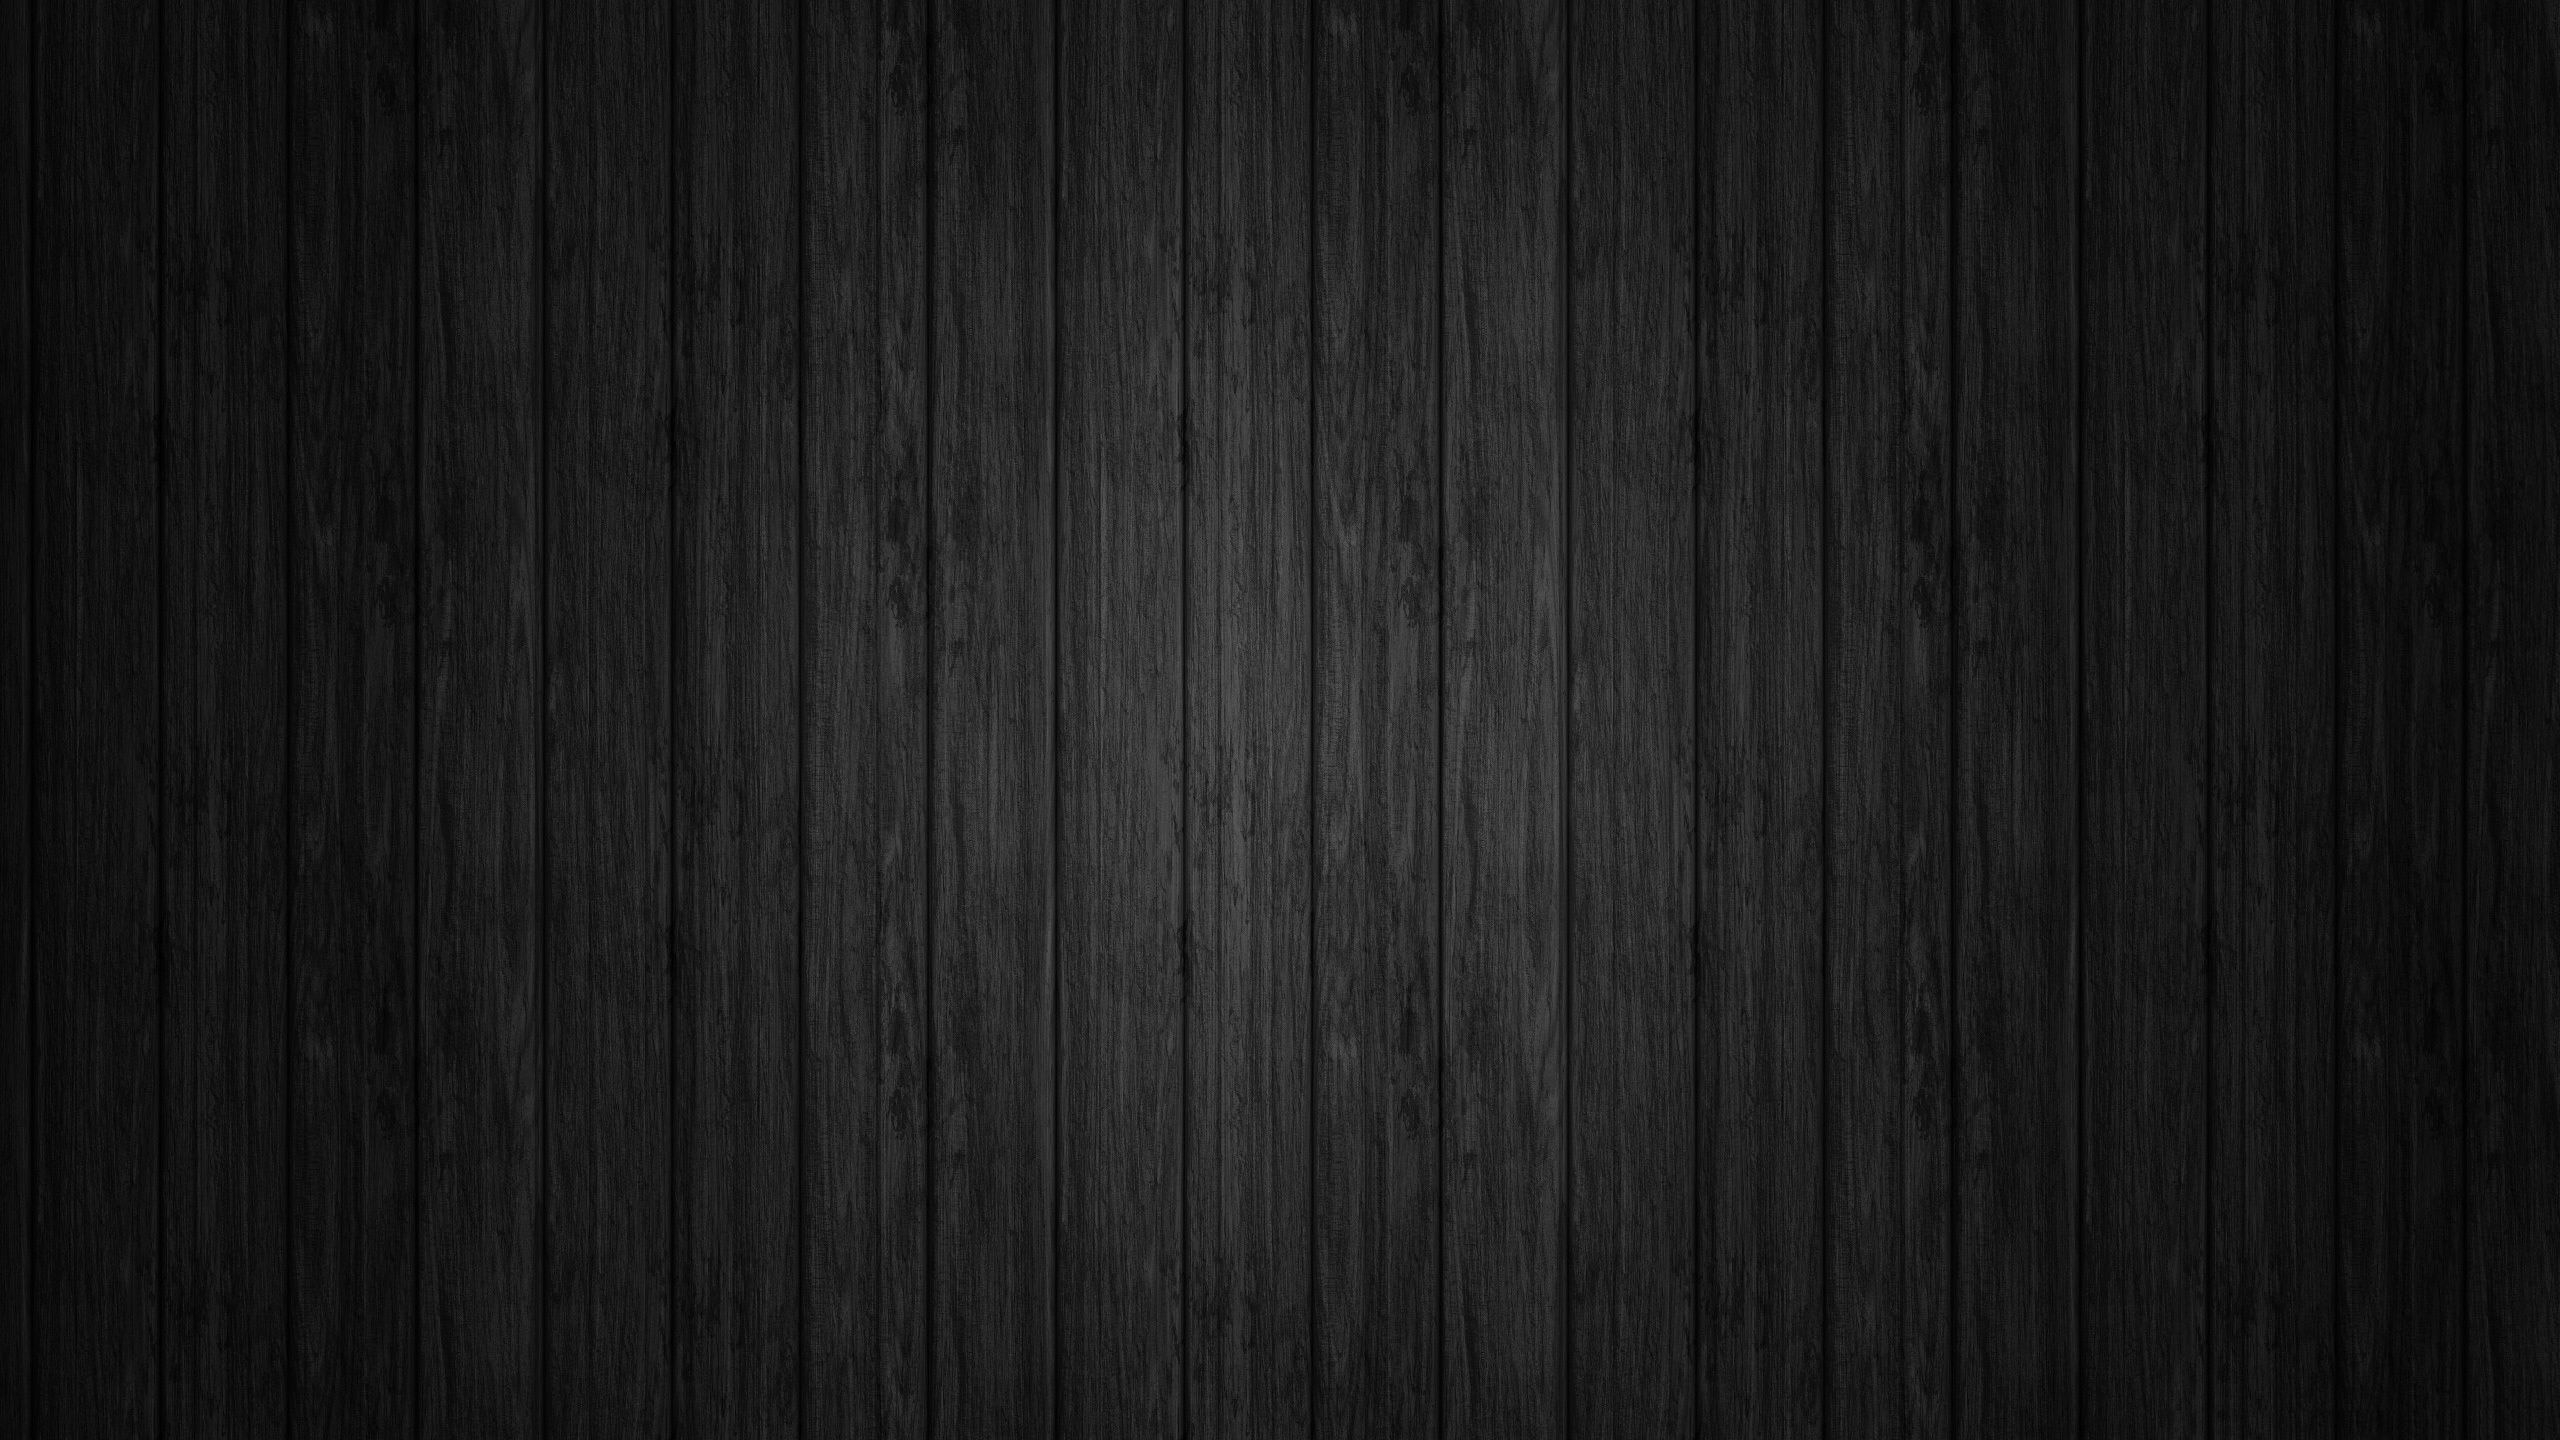 30 free black wood textures free premium creatives. Black Bedroom Furniture Sets. Home Design Ideas